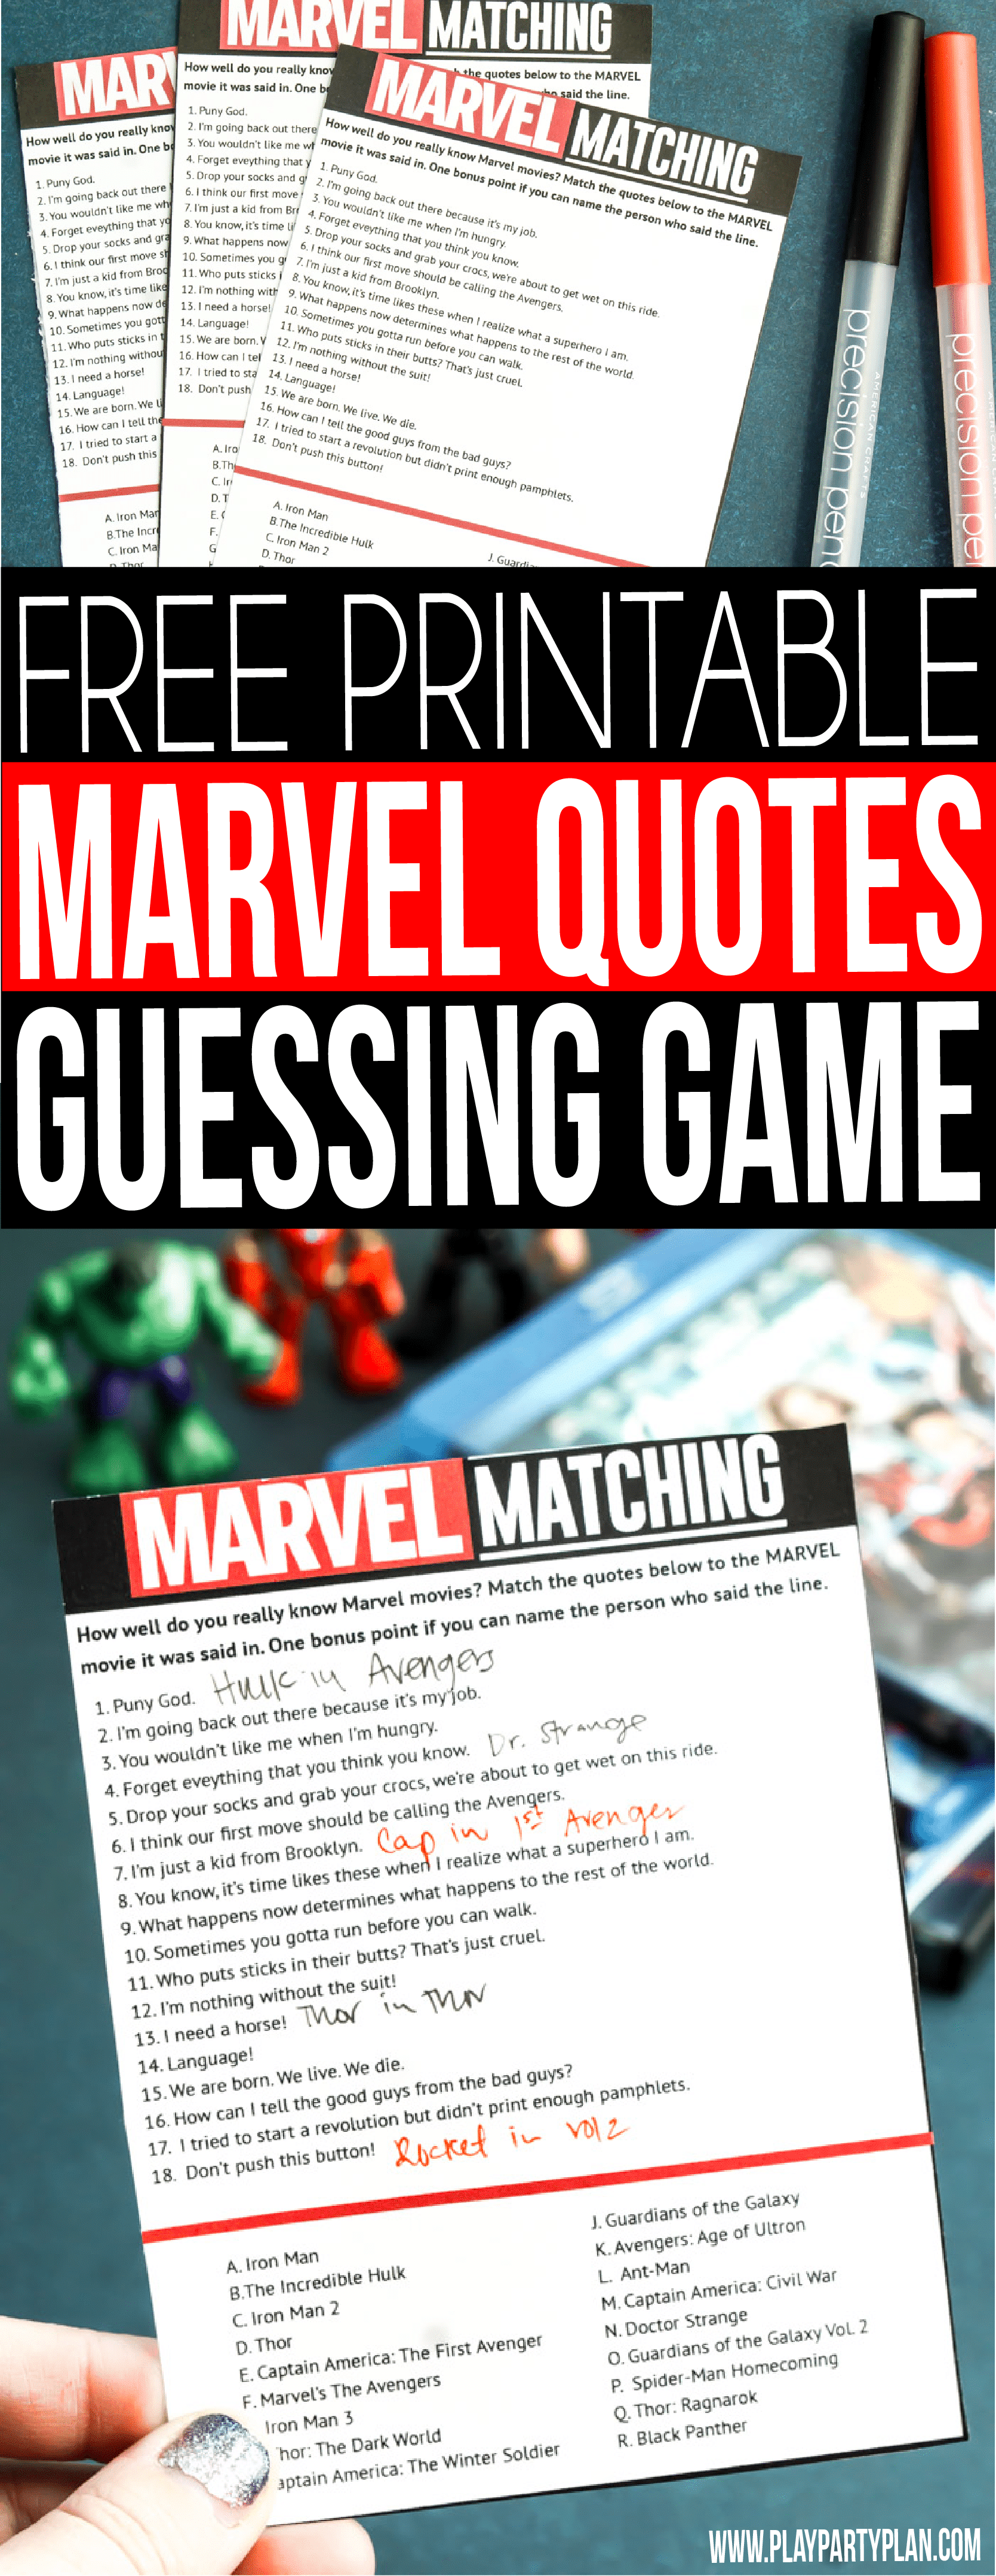 Get ready for Marvel's Avengers Infinity War this May with this fun MARVEL movie quotes game! See if you can guess match quotes with movies and the characters who said them! Everything from funny quotes to the more serious ones from everyone's favorite superheroes!